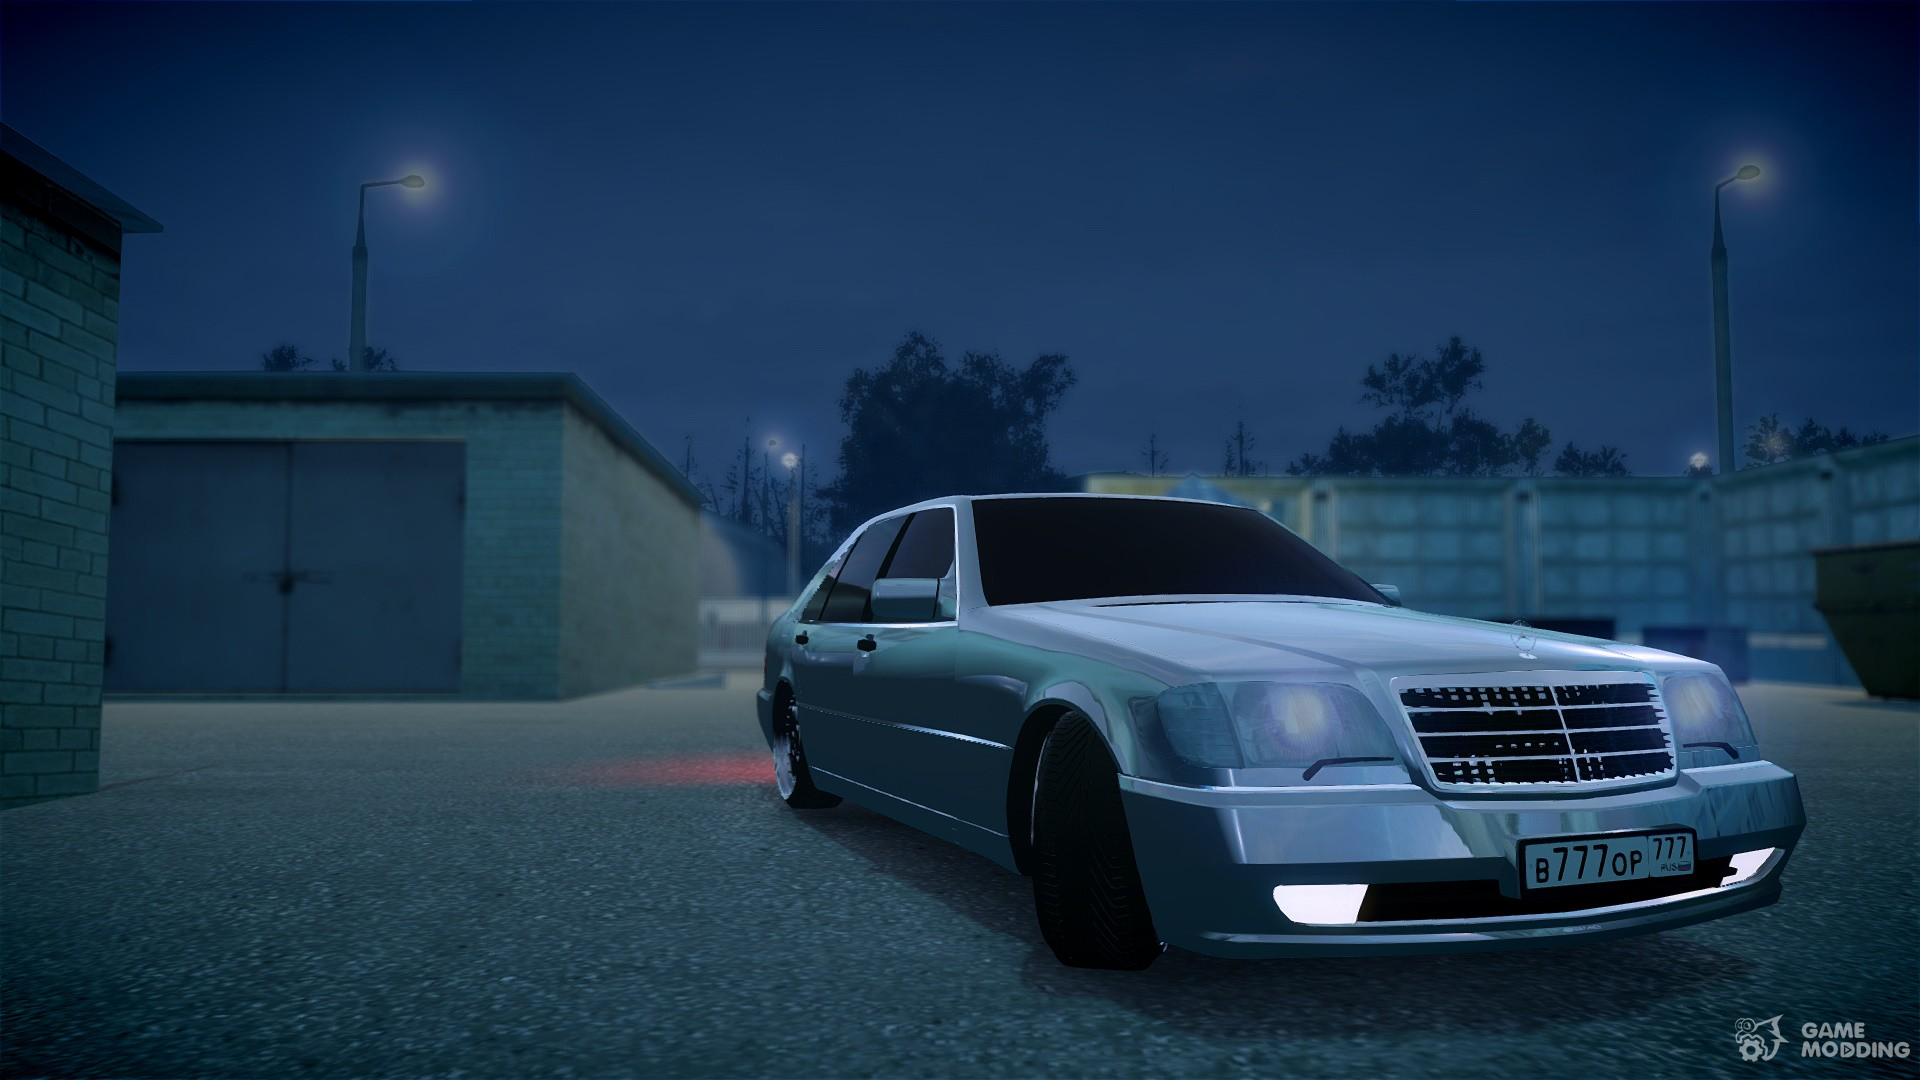 Mercedes benz w140 s600 for gta 4 for Mercedes benz s600